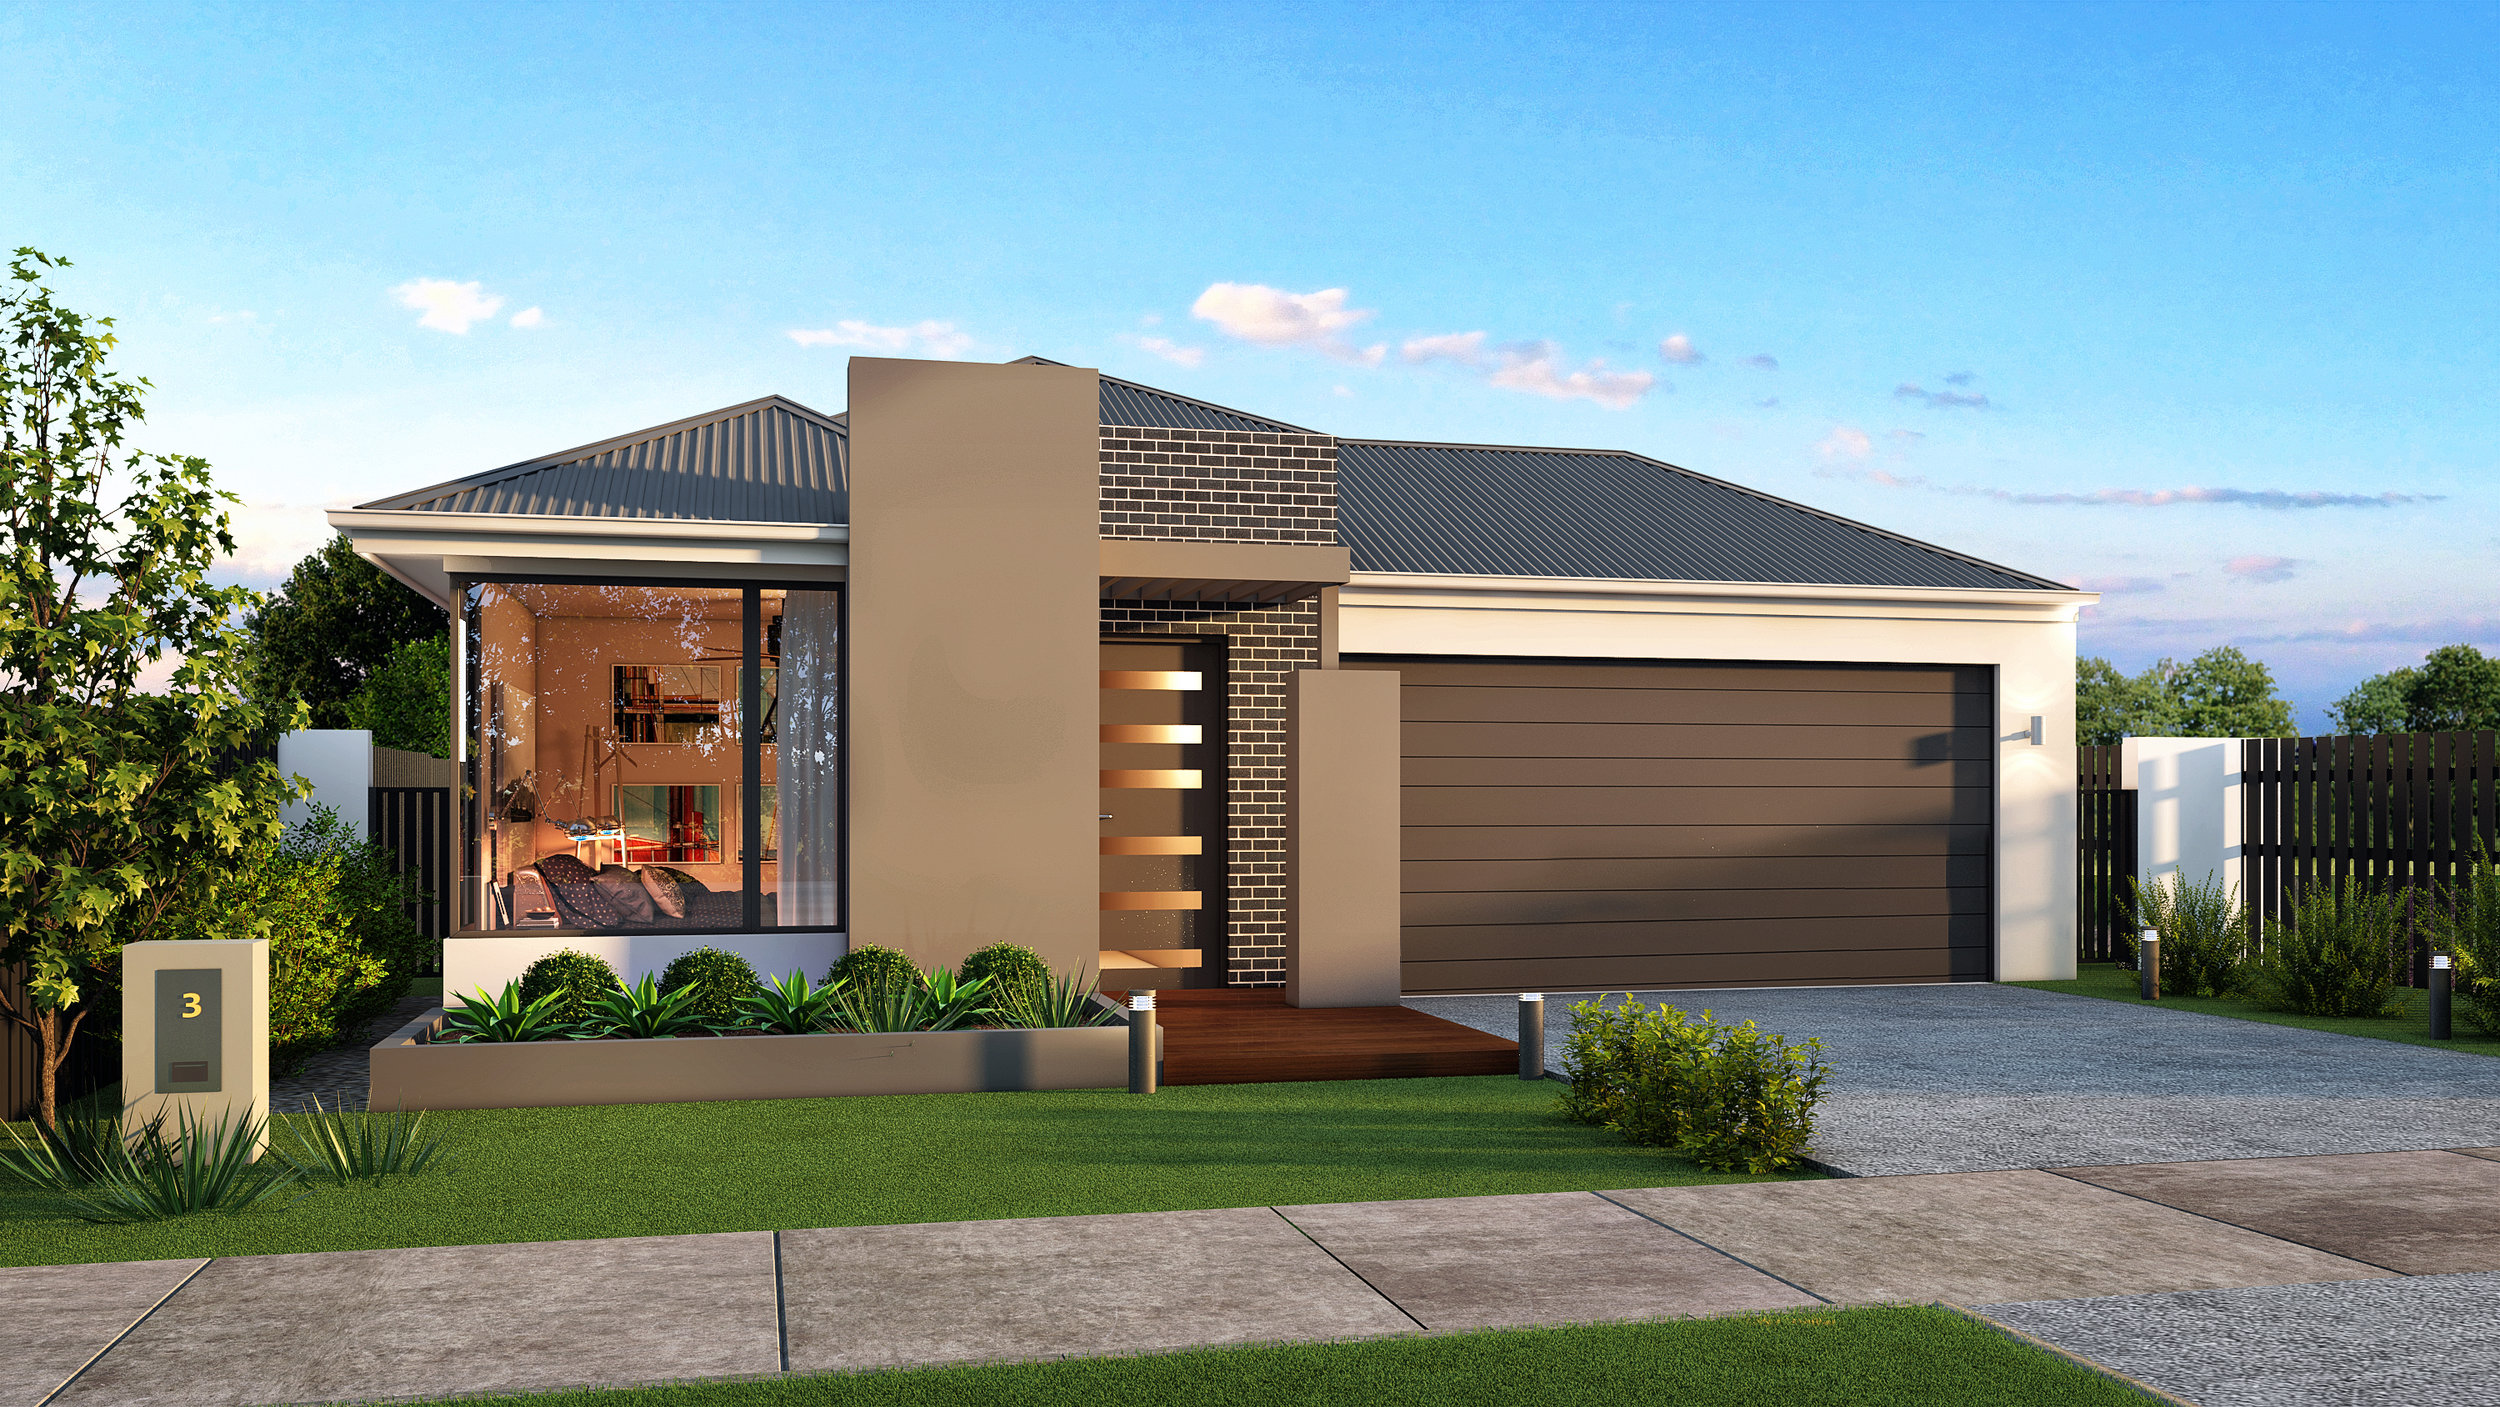 The Hub - 3 Bed | 2 Bath | Theatre Room | 2 Car Garage12.5m Traditional Lots